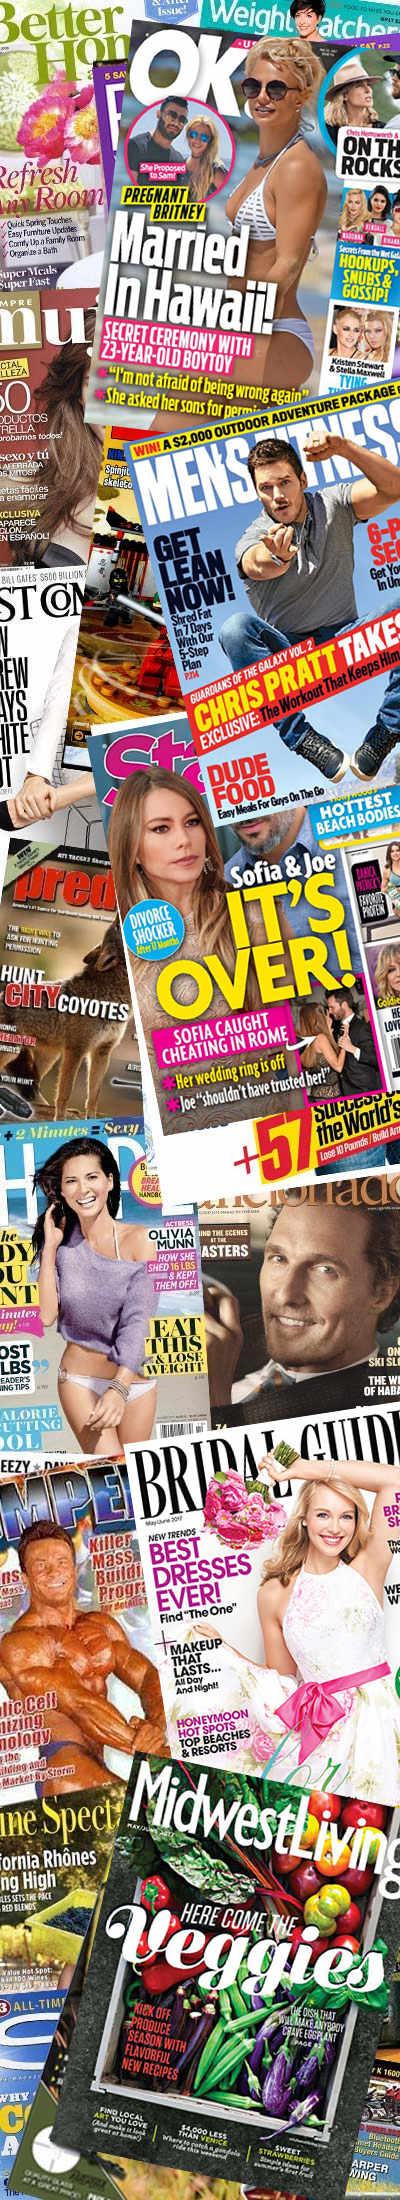 53 FREE Magazines Today [Many Verified Received By Mail] - Yo! Free